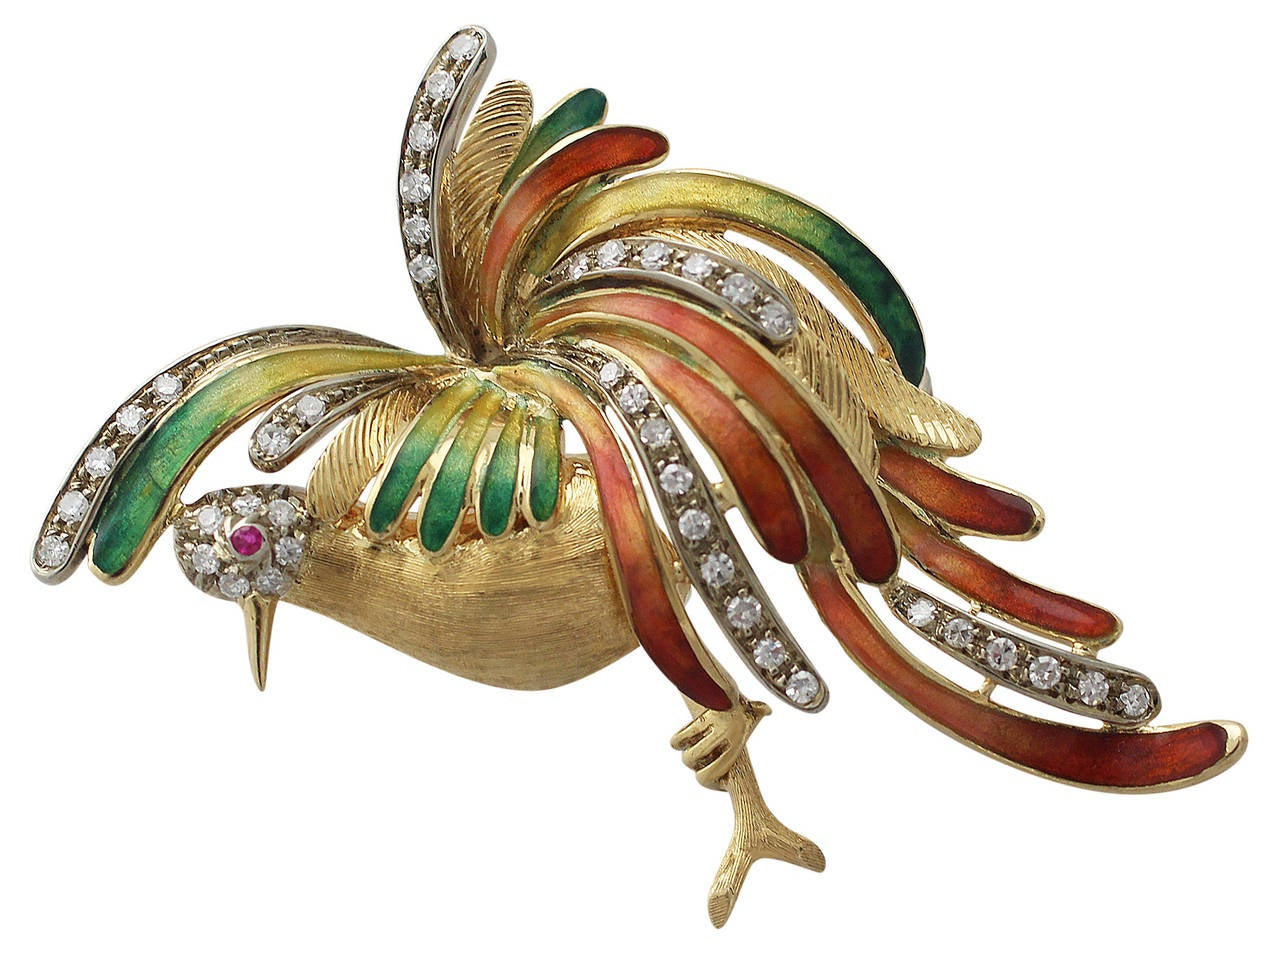 0.75Ct Diamond & 0.02Ct Ruby, Enamel & 18k Yellow Gold Bird Brooch - Vintage 2